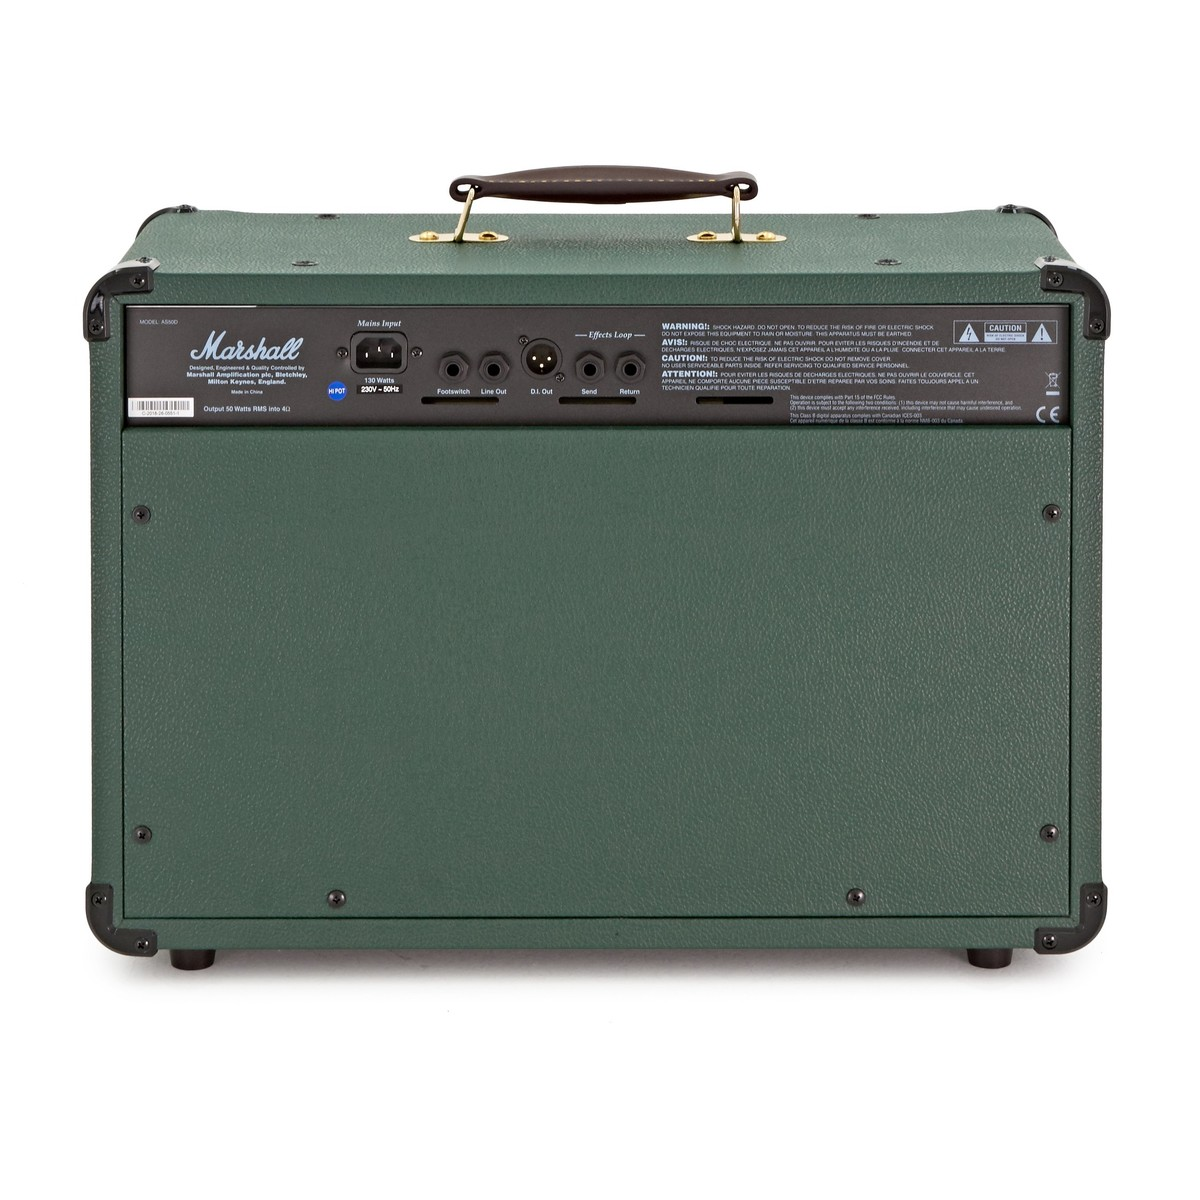 marshall as50d acoustic amp limited edition racing green at gear4music. Black Bedroom Furniture Sets. Home Design Ideas